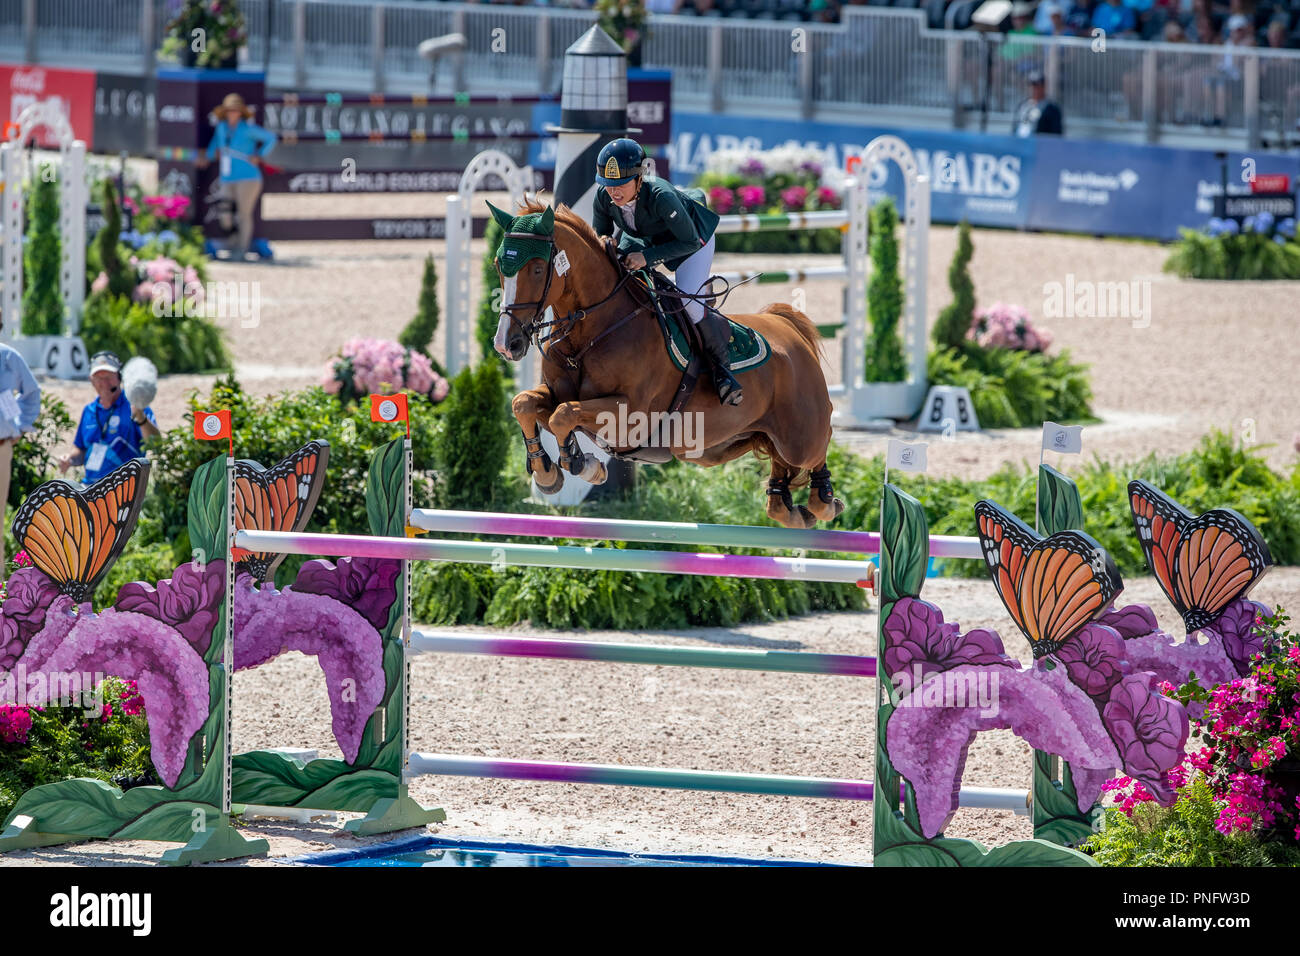 20 September 2018, US, Tryon: Equestrian Sport, World Equestrian Games· 2018, 2nd team qualification, 1st round. Dalma Malhas (KSA) with Toscanini Malpic in action. Photo: Stefan Lafrentz/dpa - Stock Image